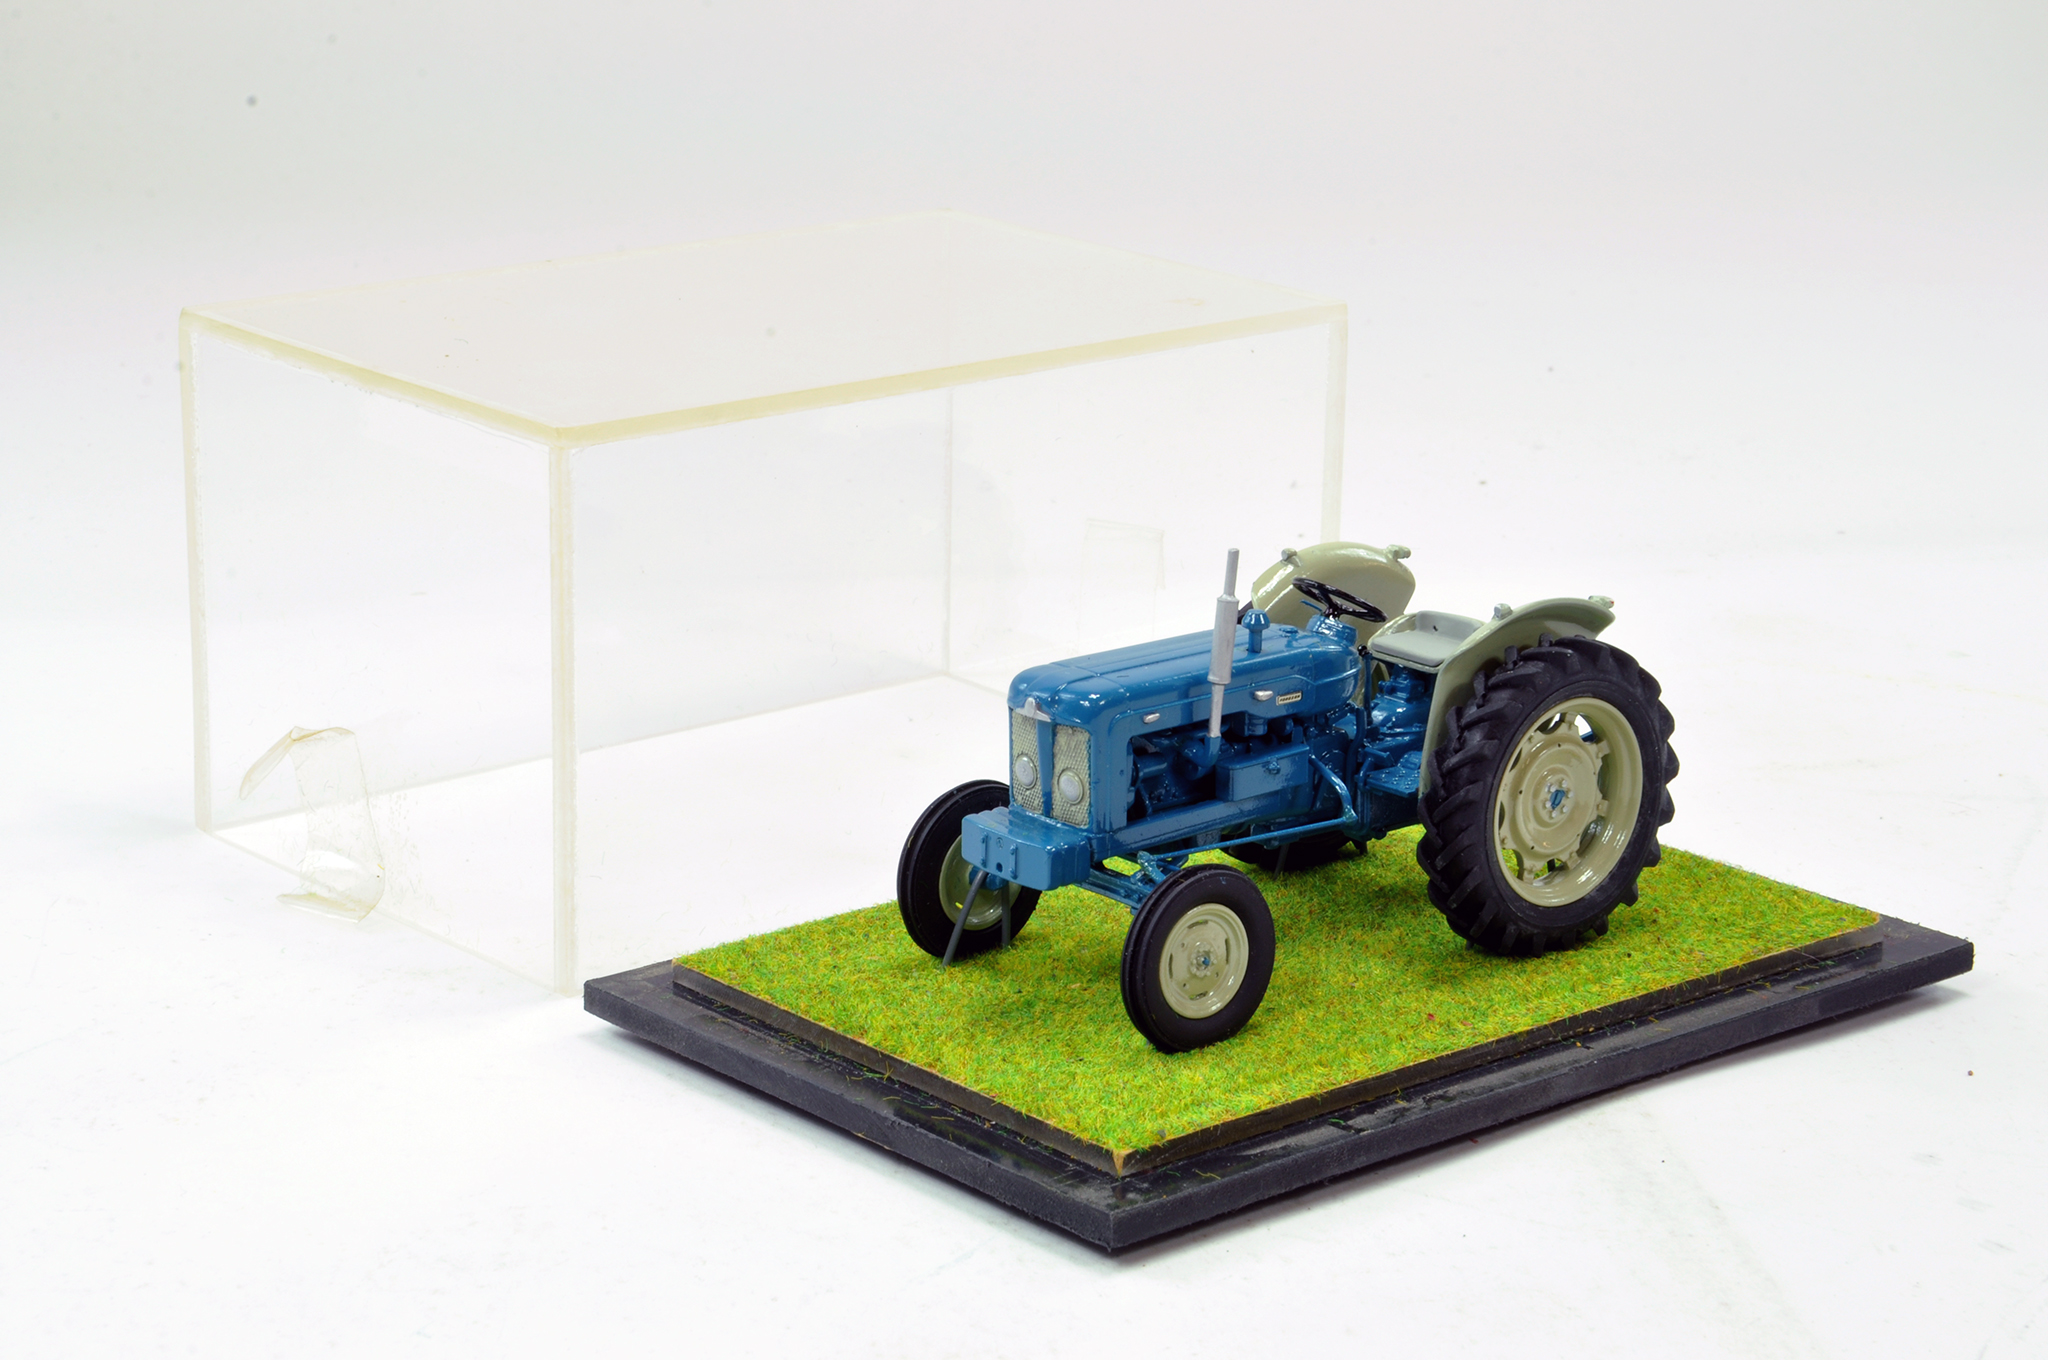 Lot 241 - Scaledown Models 1/32 Hand Built Fordson Major New Performance Tractor. Superb model is generally